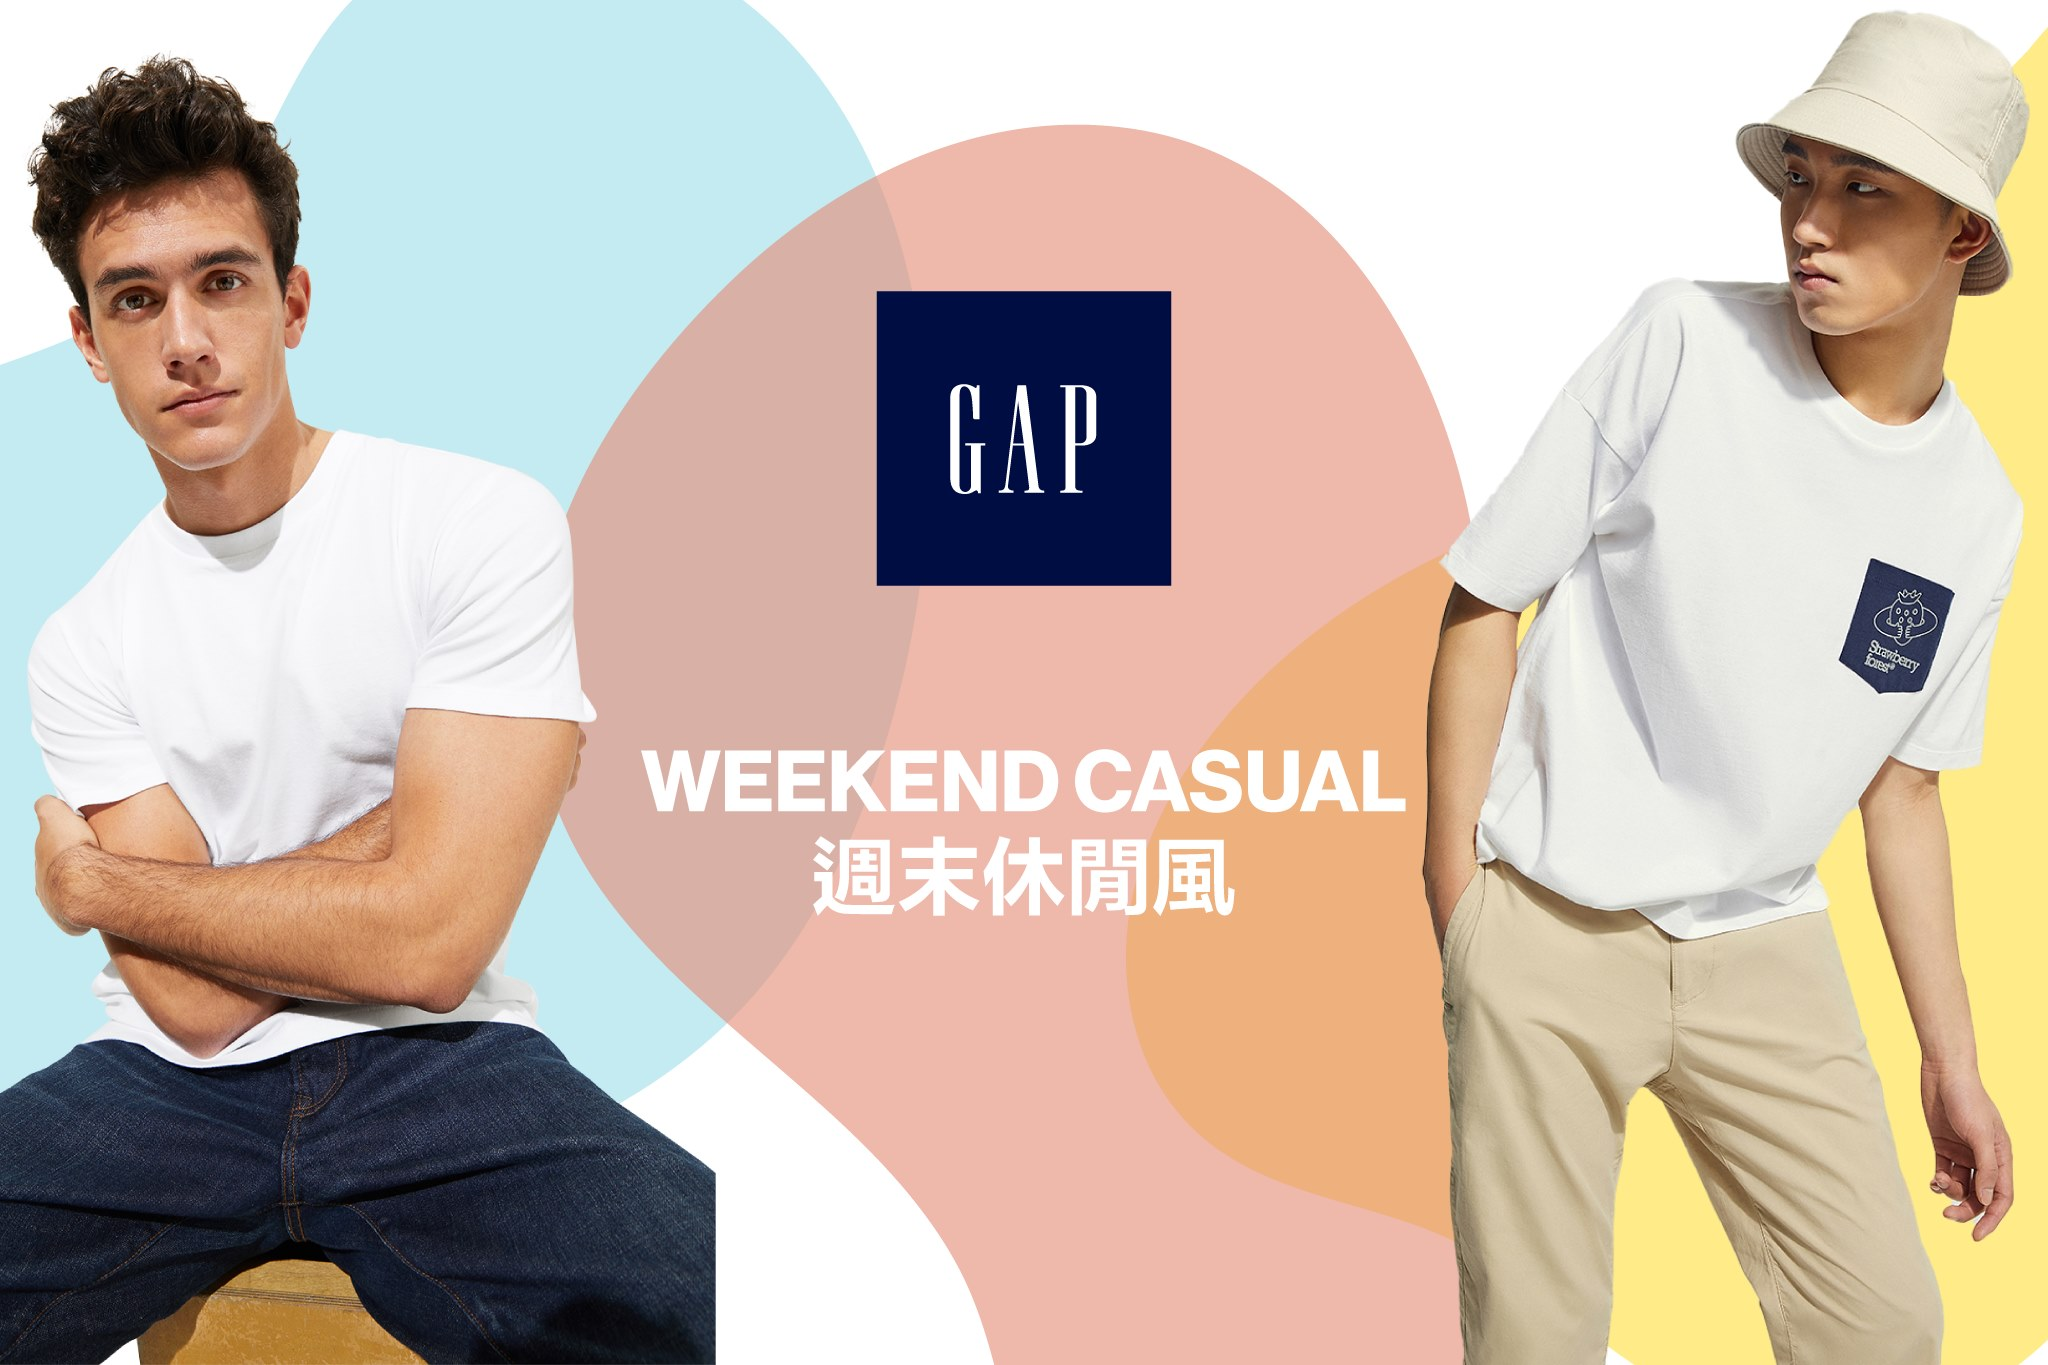 【Walk into the Weekend in Style | 休閒時尚迎週末】